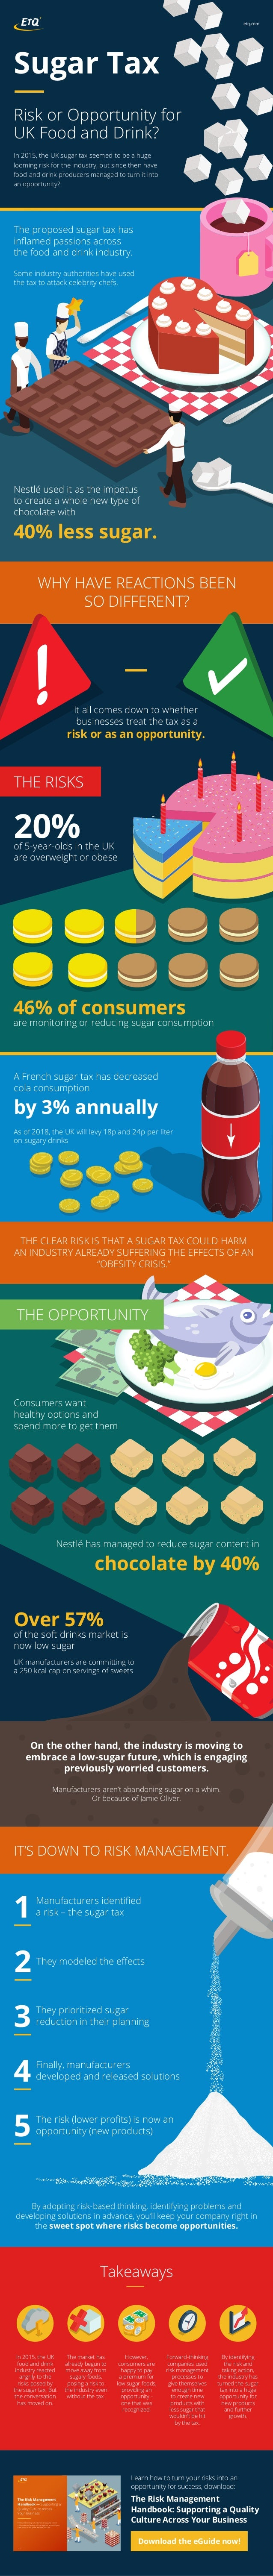 The proposed sugar tax has inflamed passions across the food and drink industry. Some industry authorities have used the t...